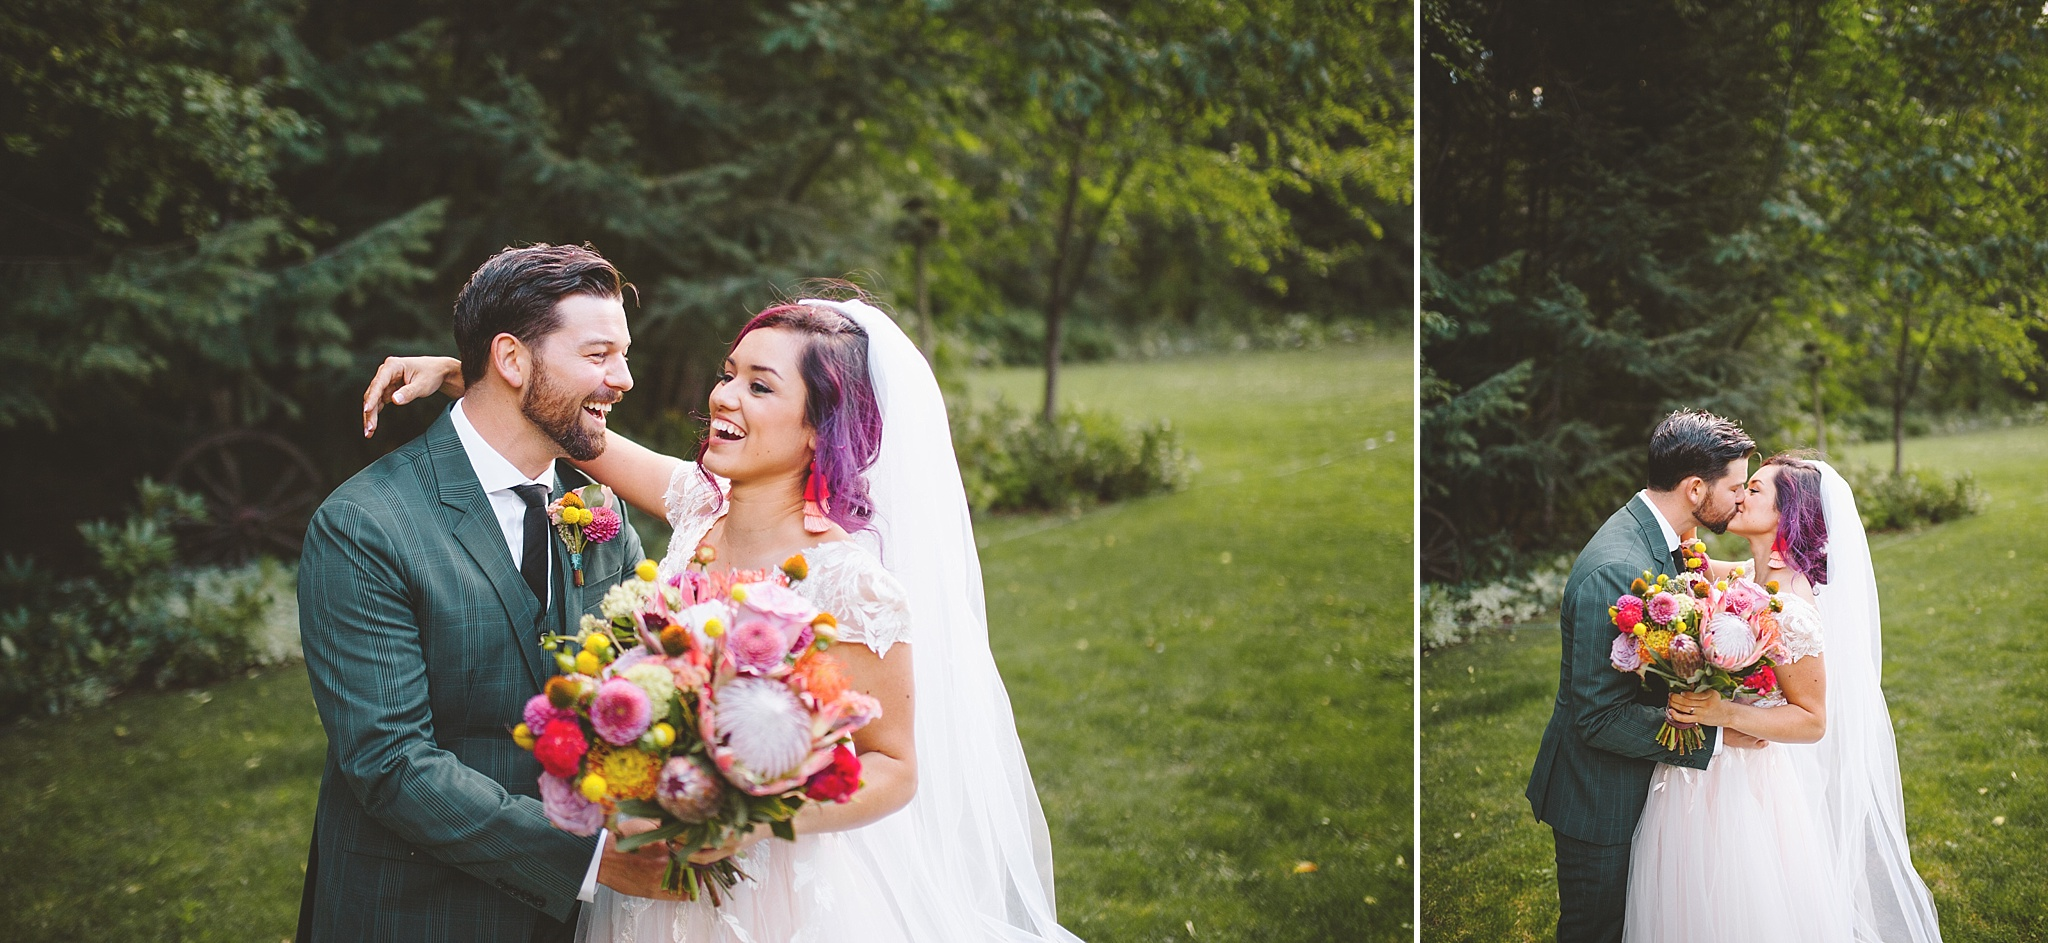 just married in the woods of washington